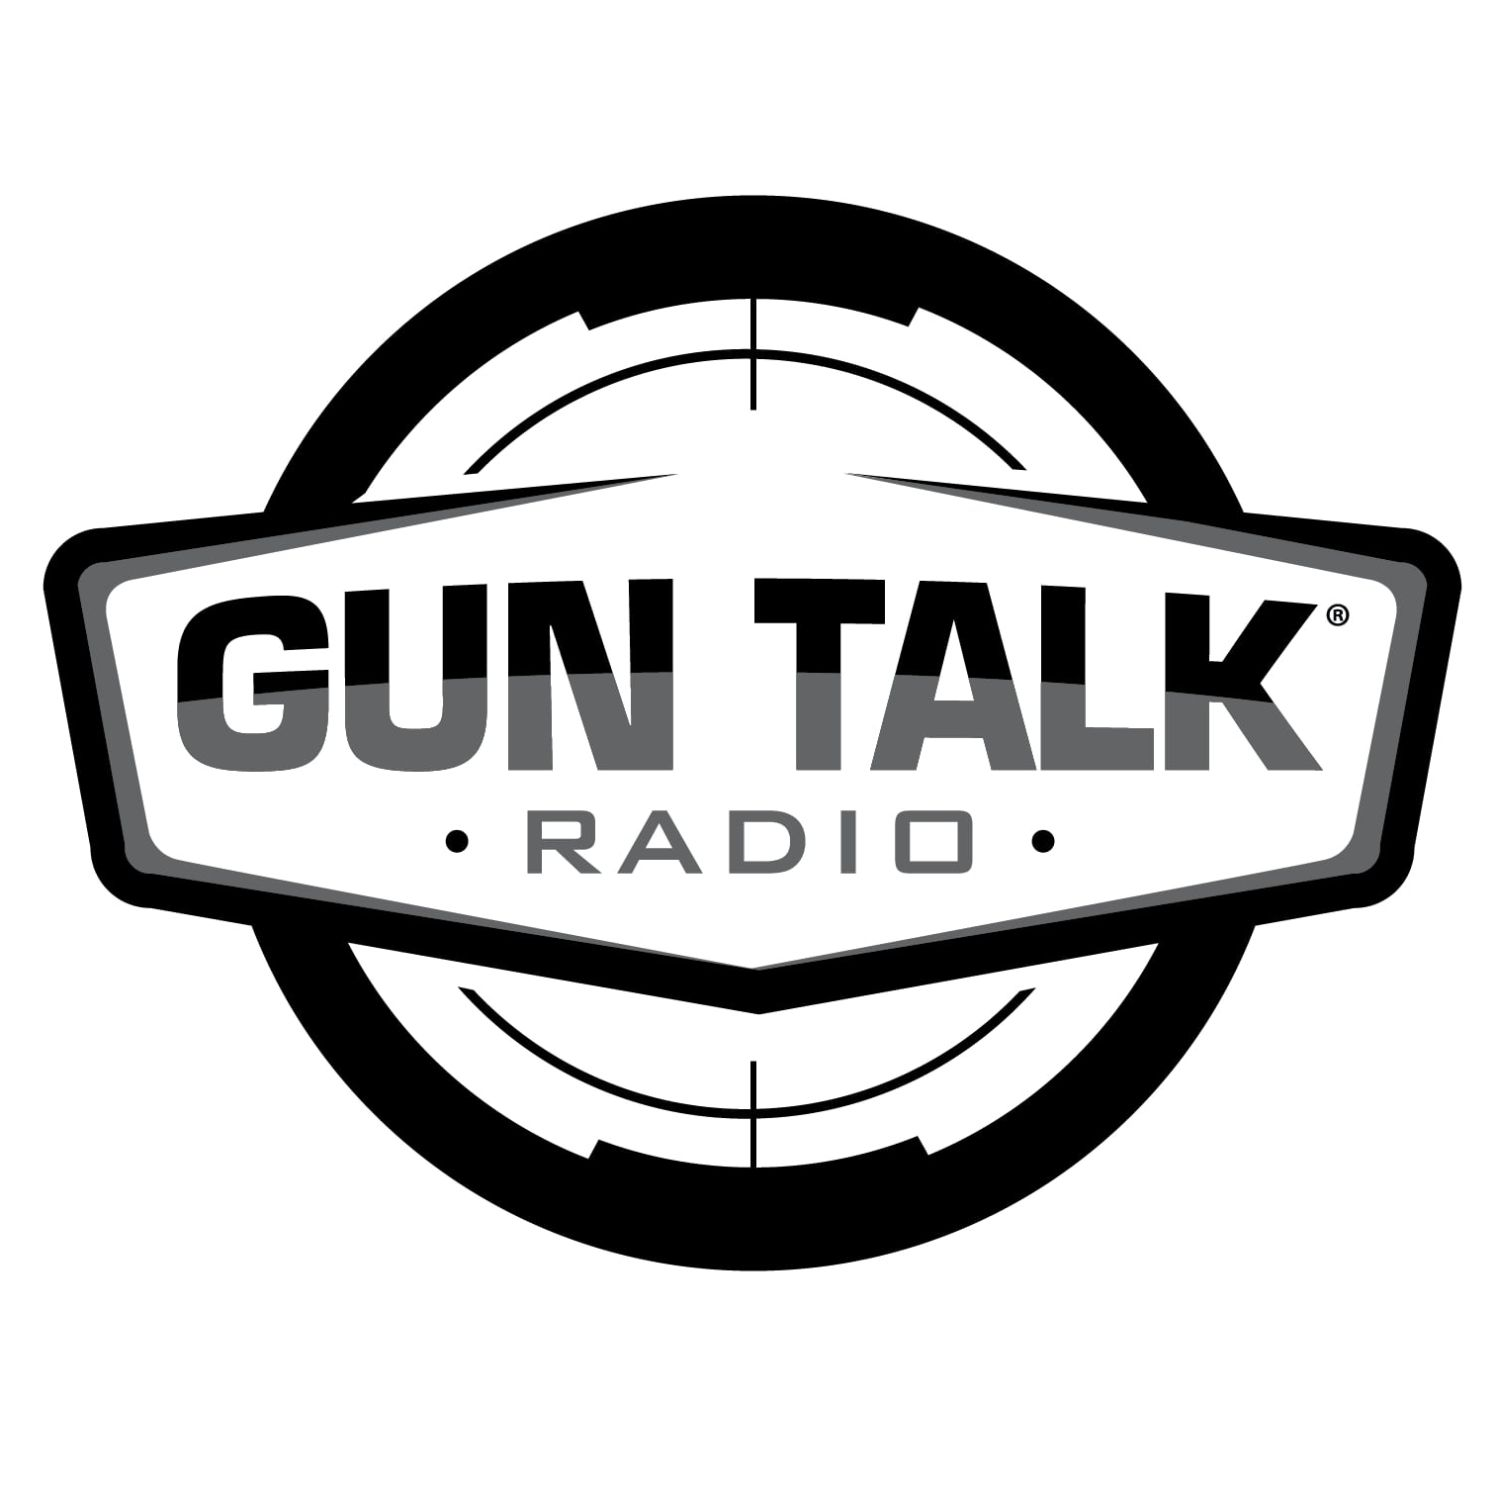 Artwork for Guntalk 2008-10-26 Part A